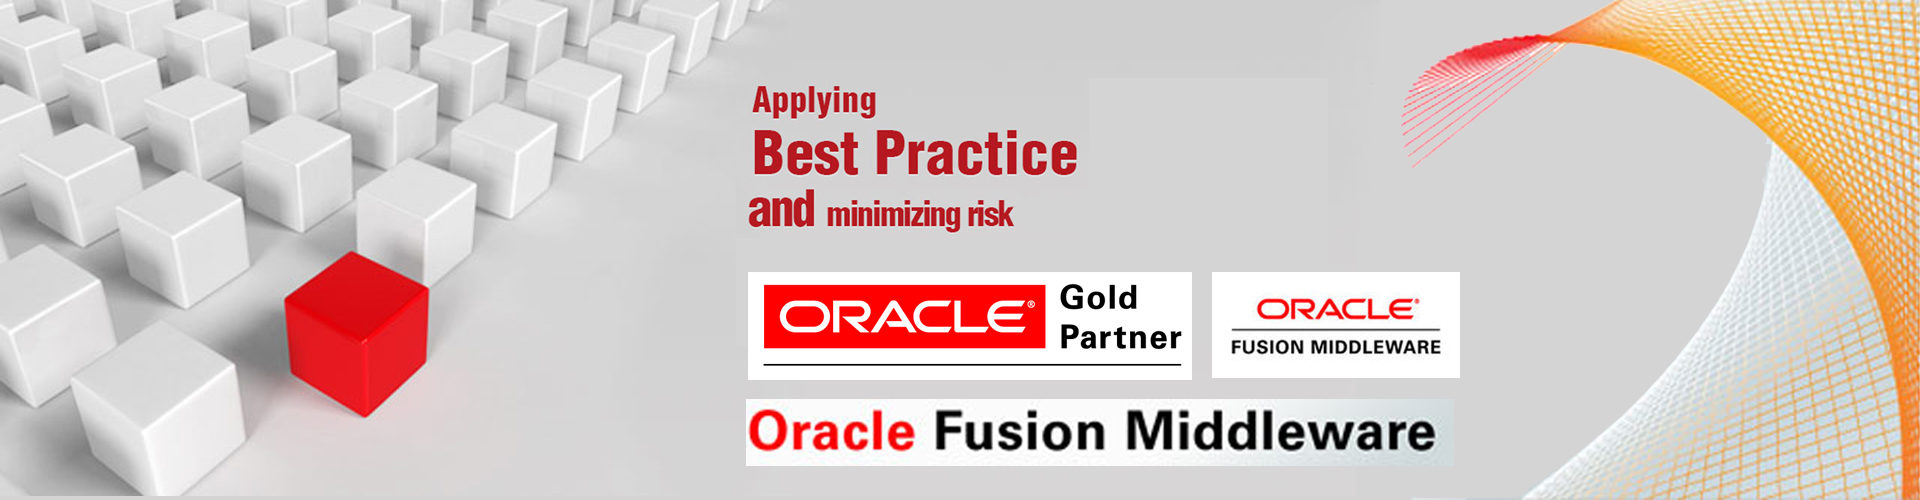 oraclefusion middleware